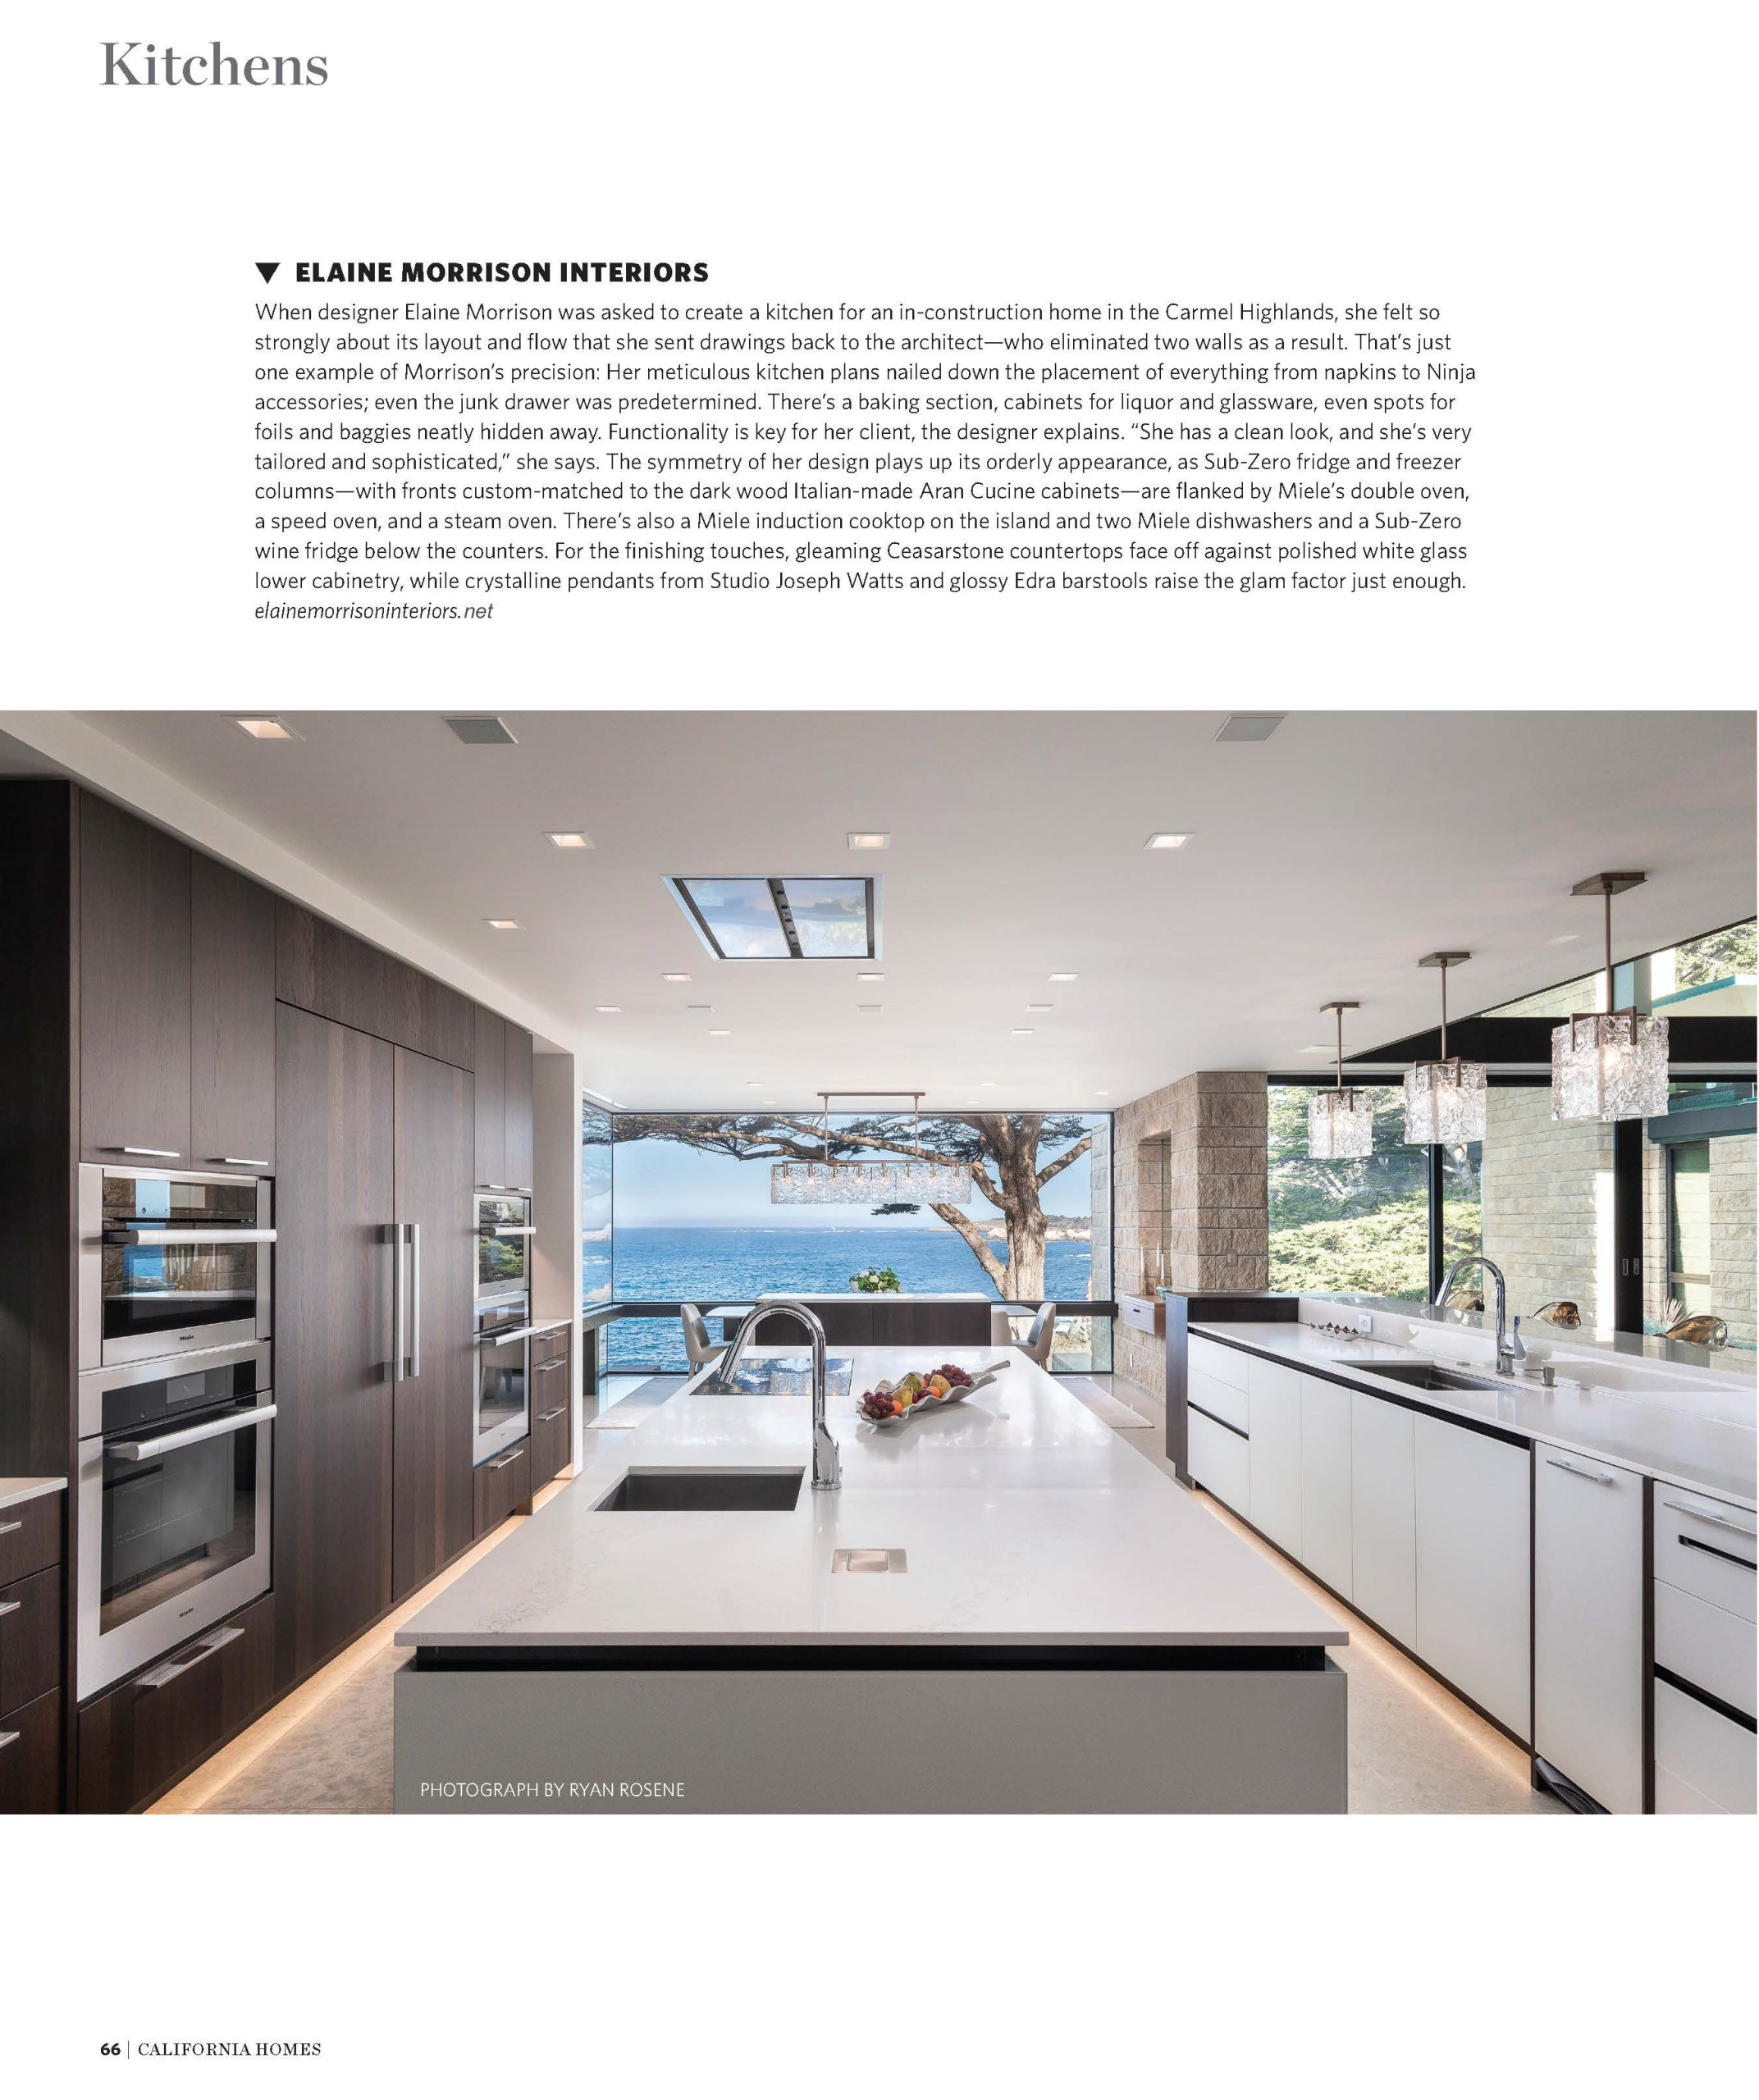 My Contemporary Kitchen Designed for a Majestic New Home in Carmel Highlands, Ca